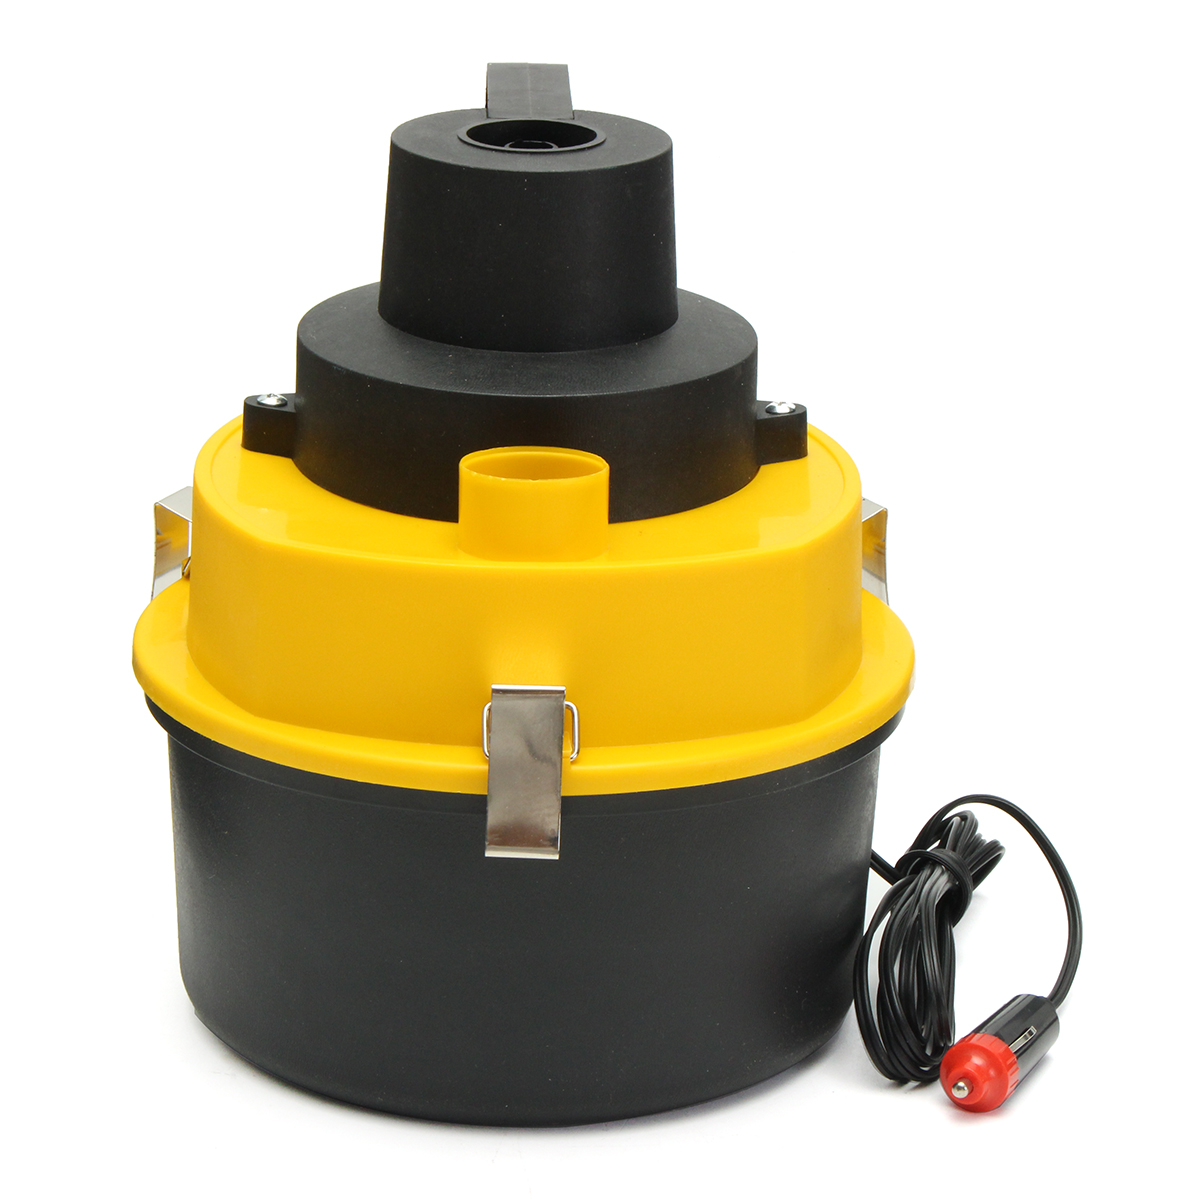 12V Portable Wet/Dry Vac Vacuum Cleaner Inflator Turbo Hand Held For Car /Shop